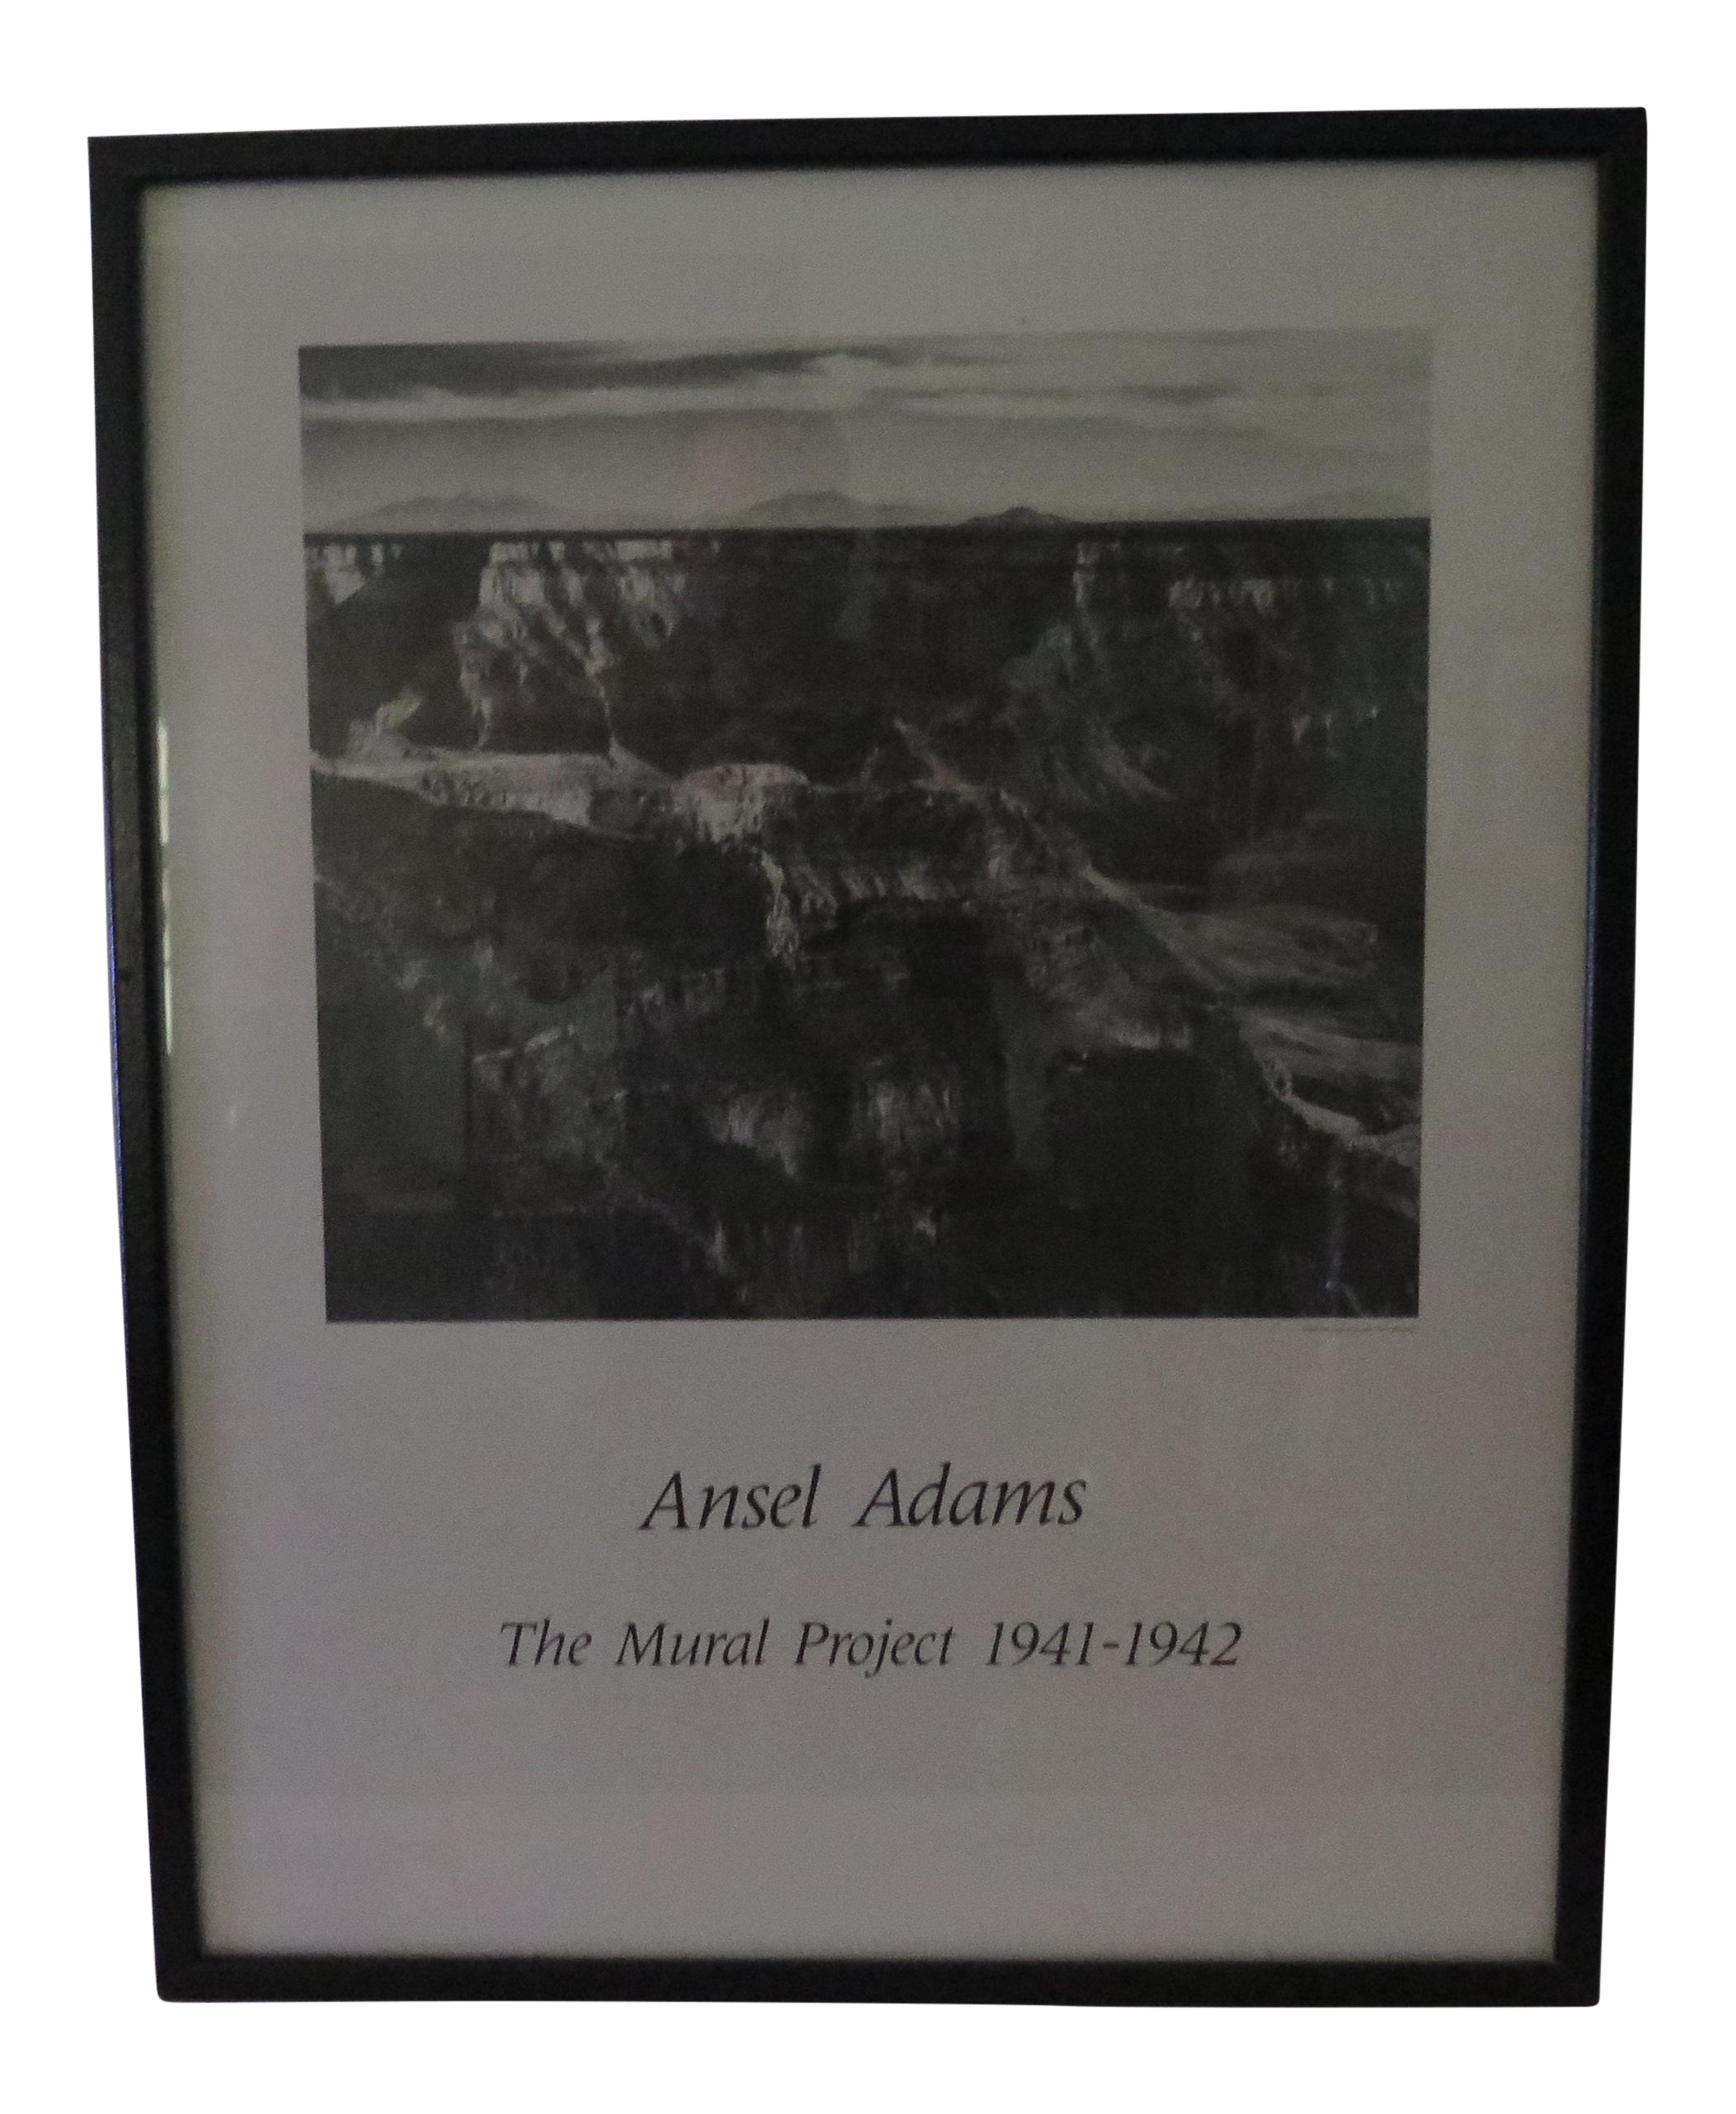 Vintage ansel adams mural project poster chairish for Ansel adams the mural project